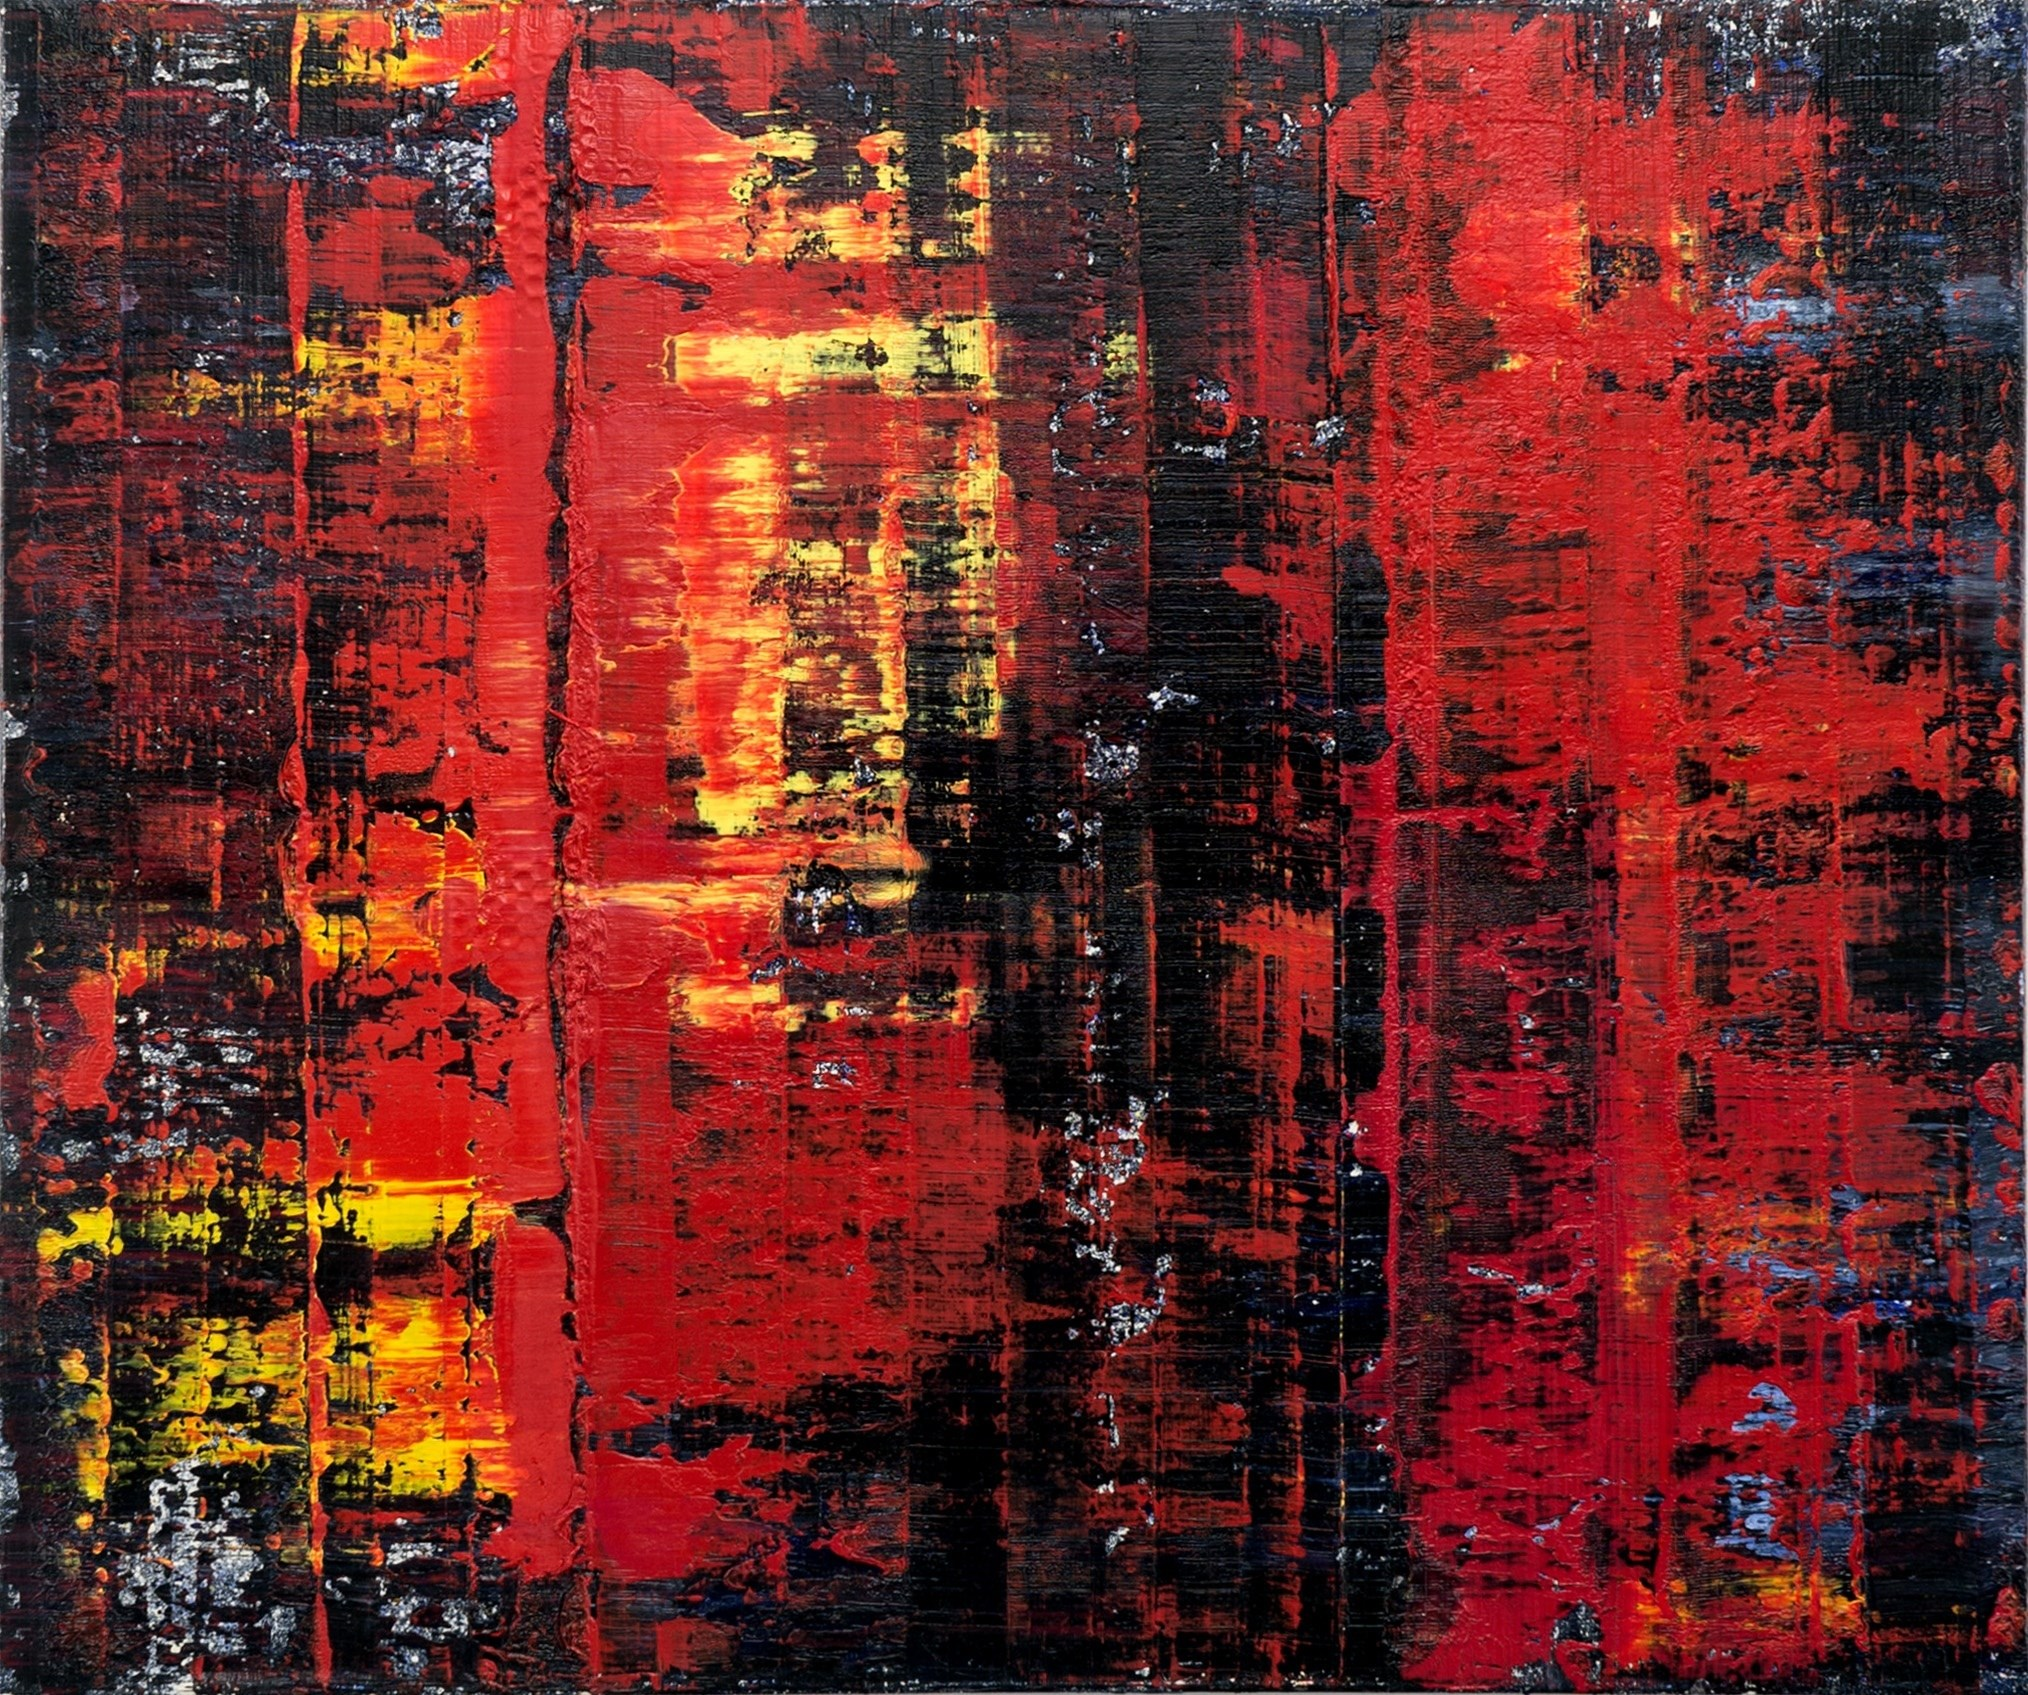 #3 (2014), original Abstract Oil Painting by Pedro Bom